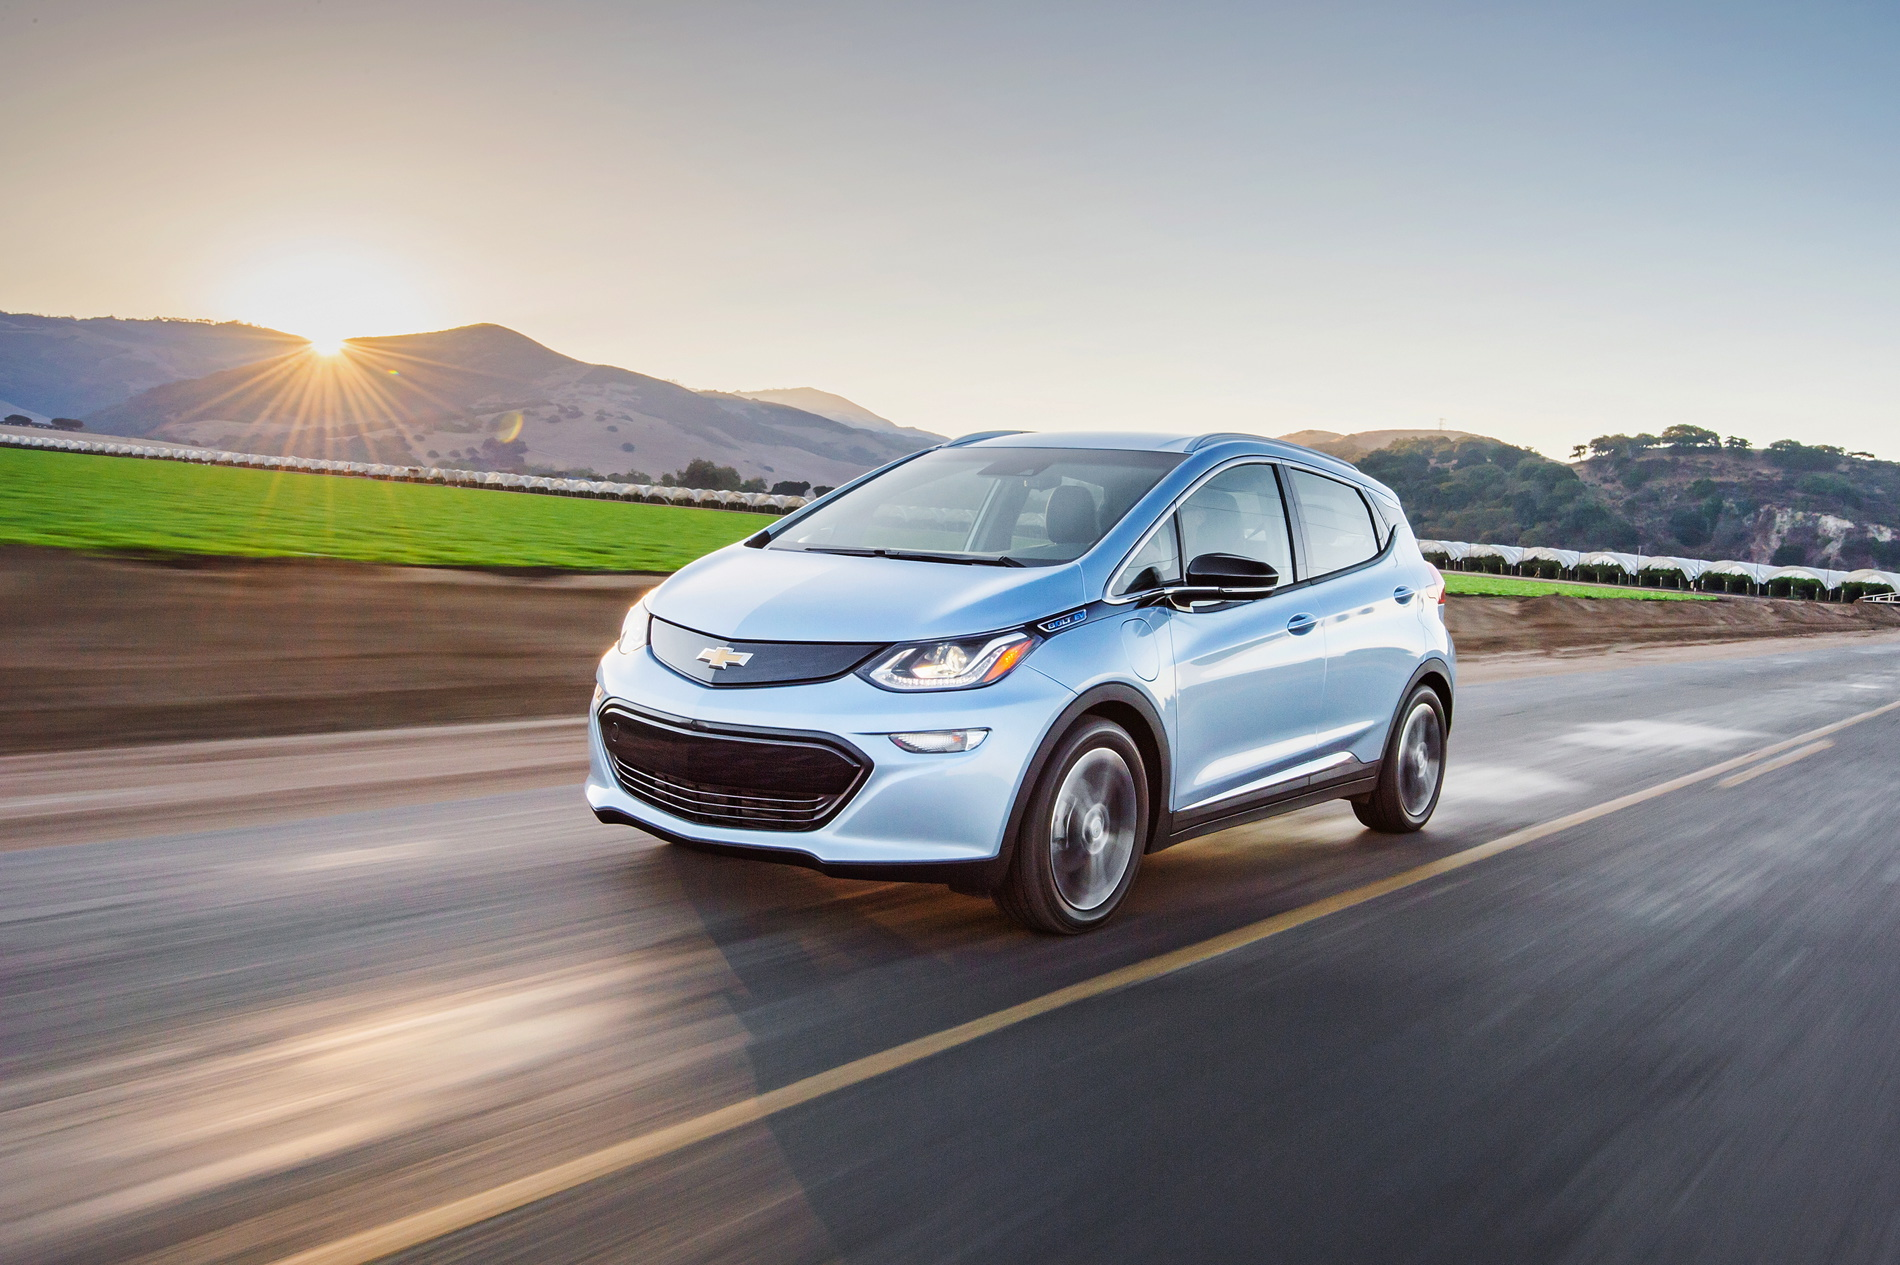 TEST DRIVE: The 2017 Chevy Bolt electric car